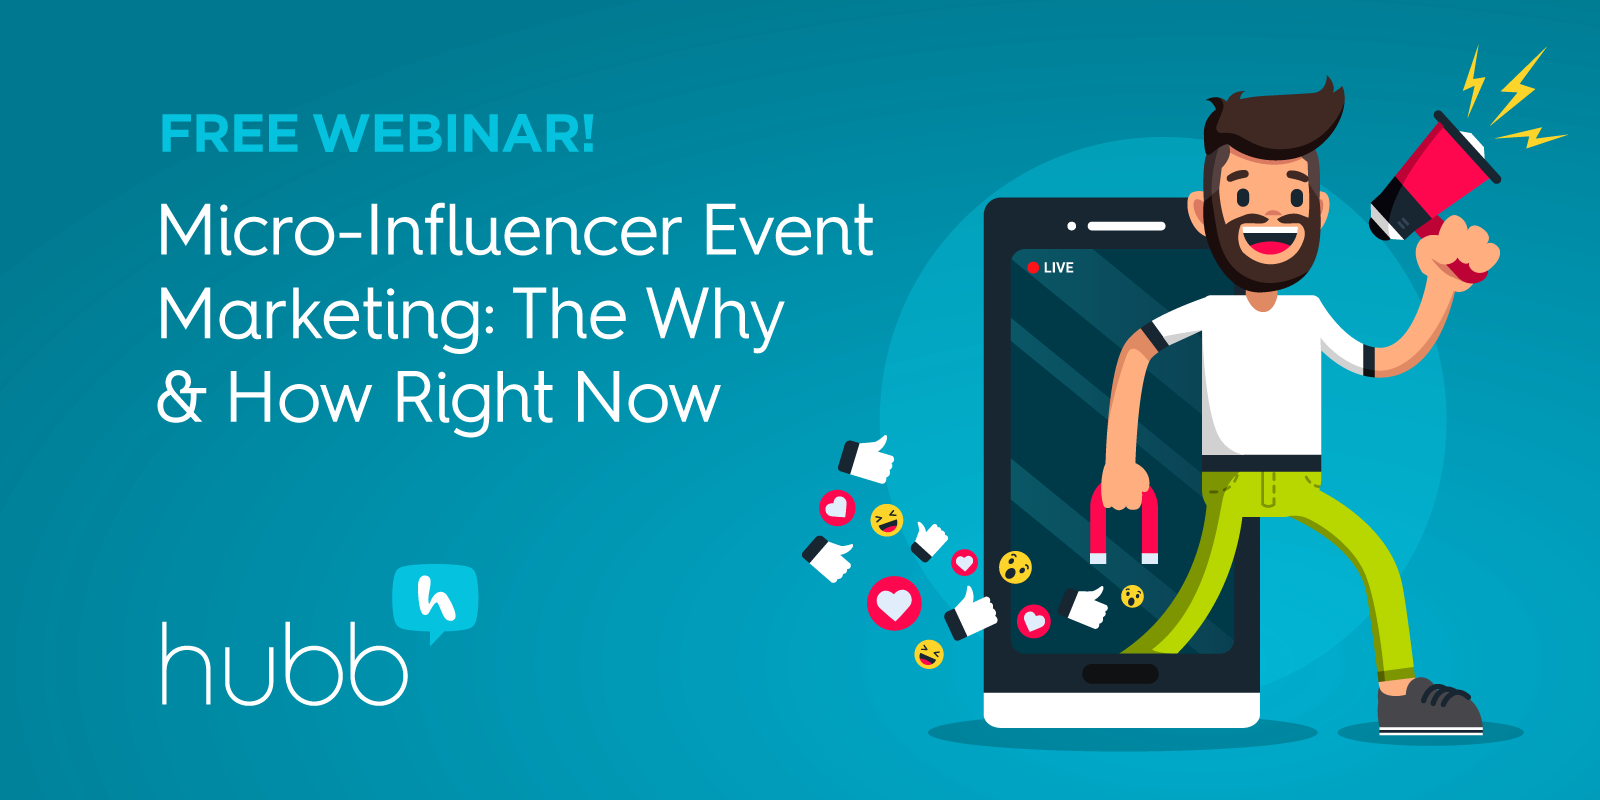 [Webinar] Micro-Influencer Event Marketing: The Why & How Right Now